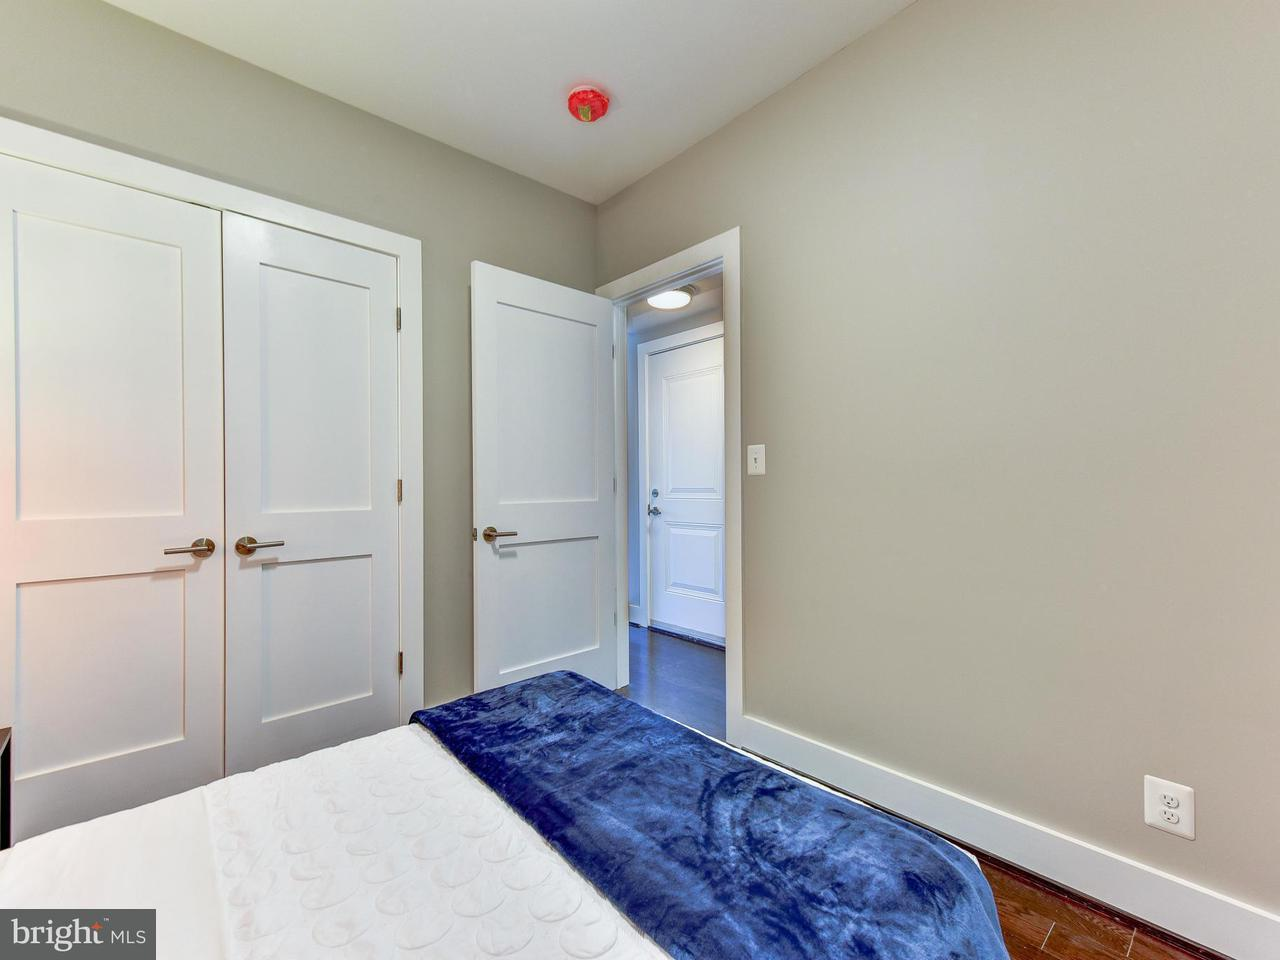 Additional photo for property listing at 1453 GIRARD ST NW #1 1453 GIRARD ST NW #1 Washington, コロンビア特別区 20009 アメリカ合衆国